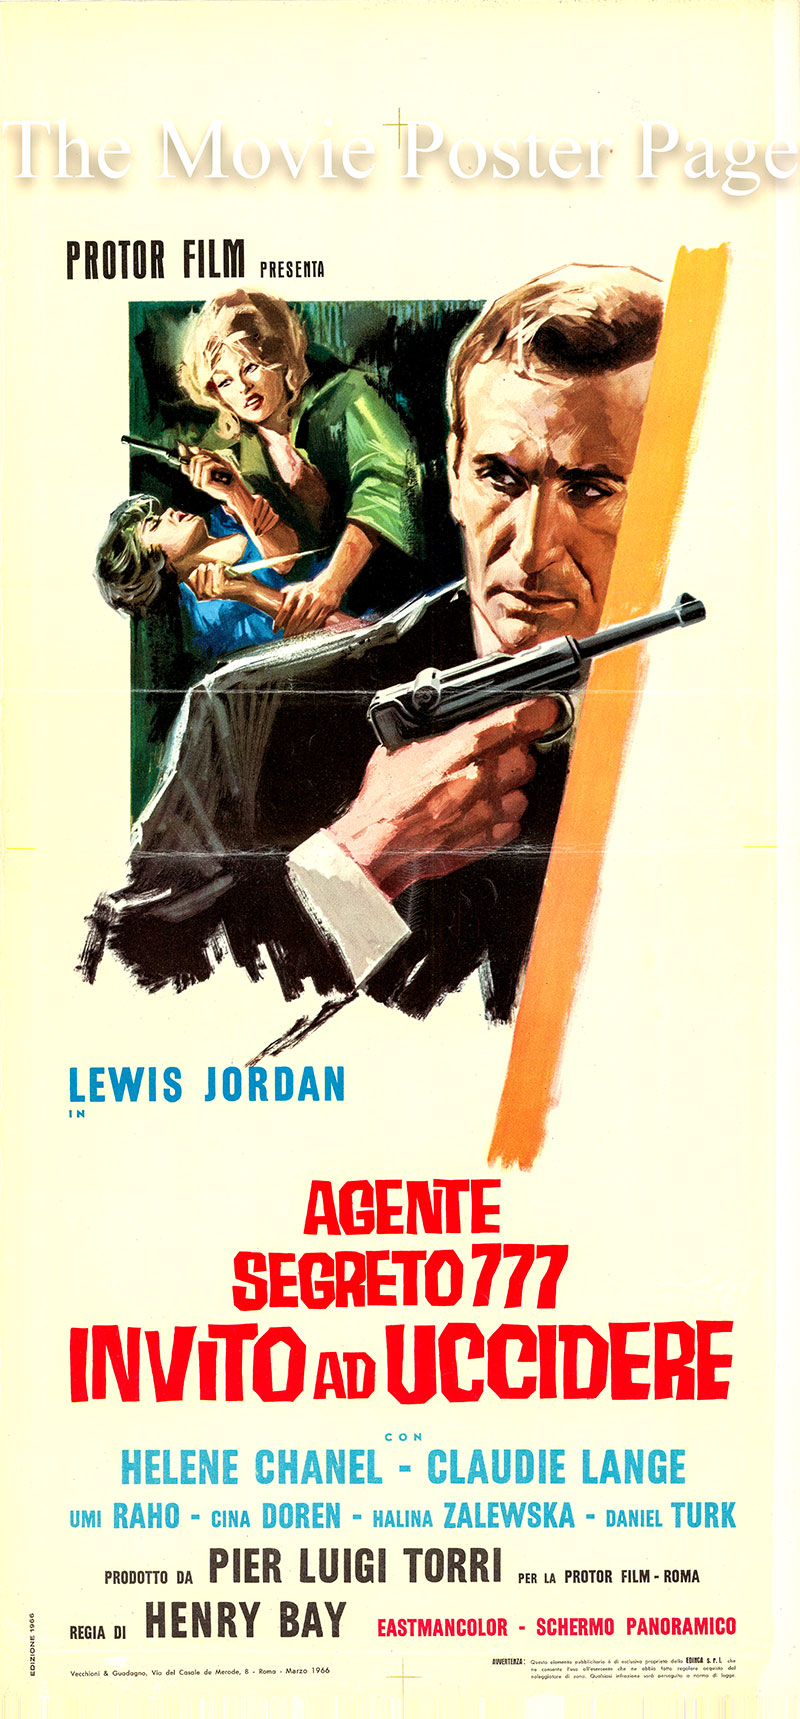 Pictured is an Italian locandina promotional poster for the 1966 Encroco Bomba film Ticket to Die starring Tiziano Cortini as Lewis Jordan, agente 777.